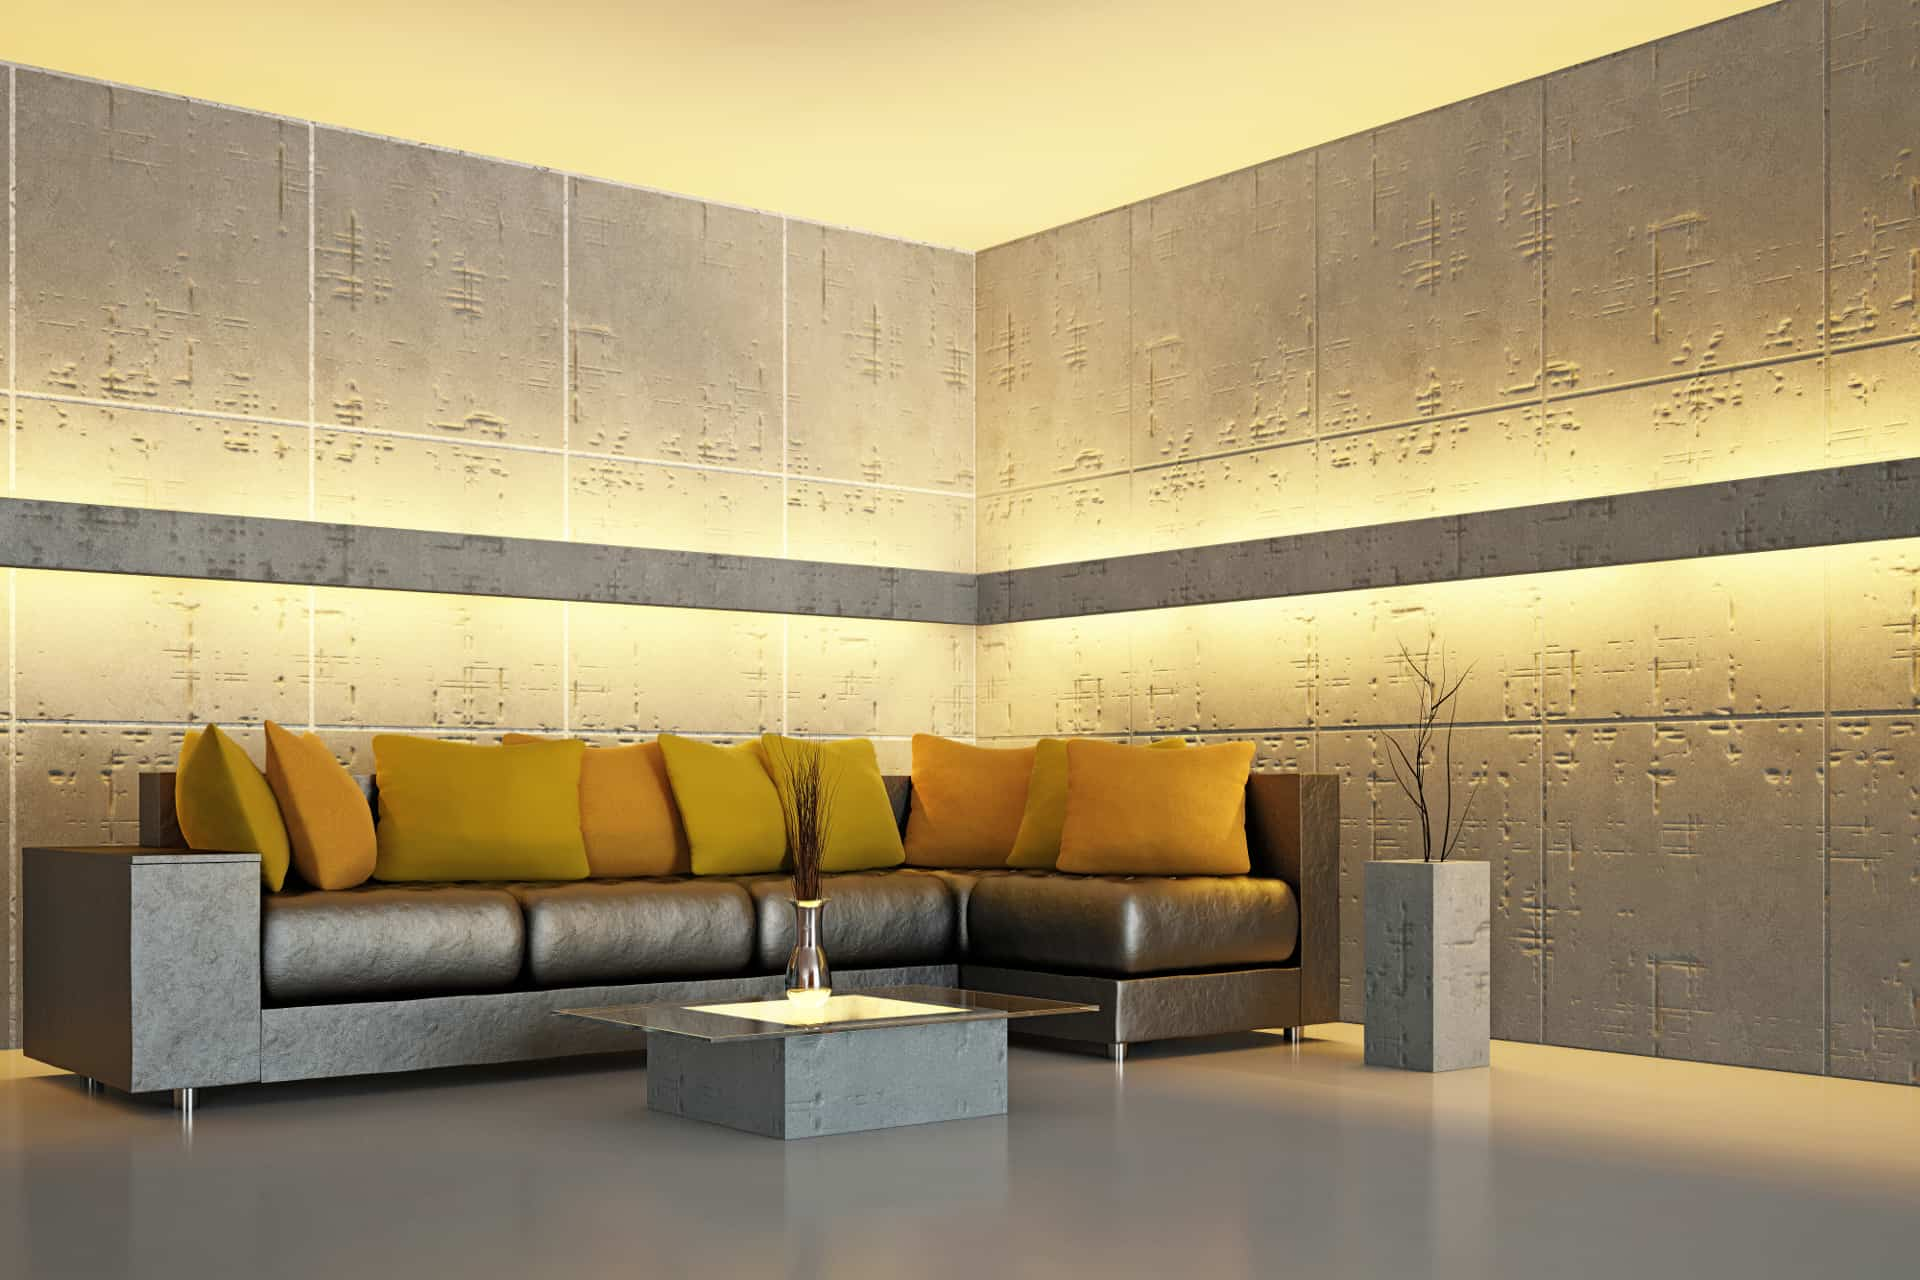 Indirect Lighting With LEDs: Find Some Cool Ideas - LampHQ